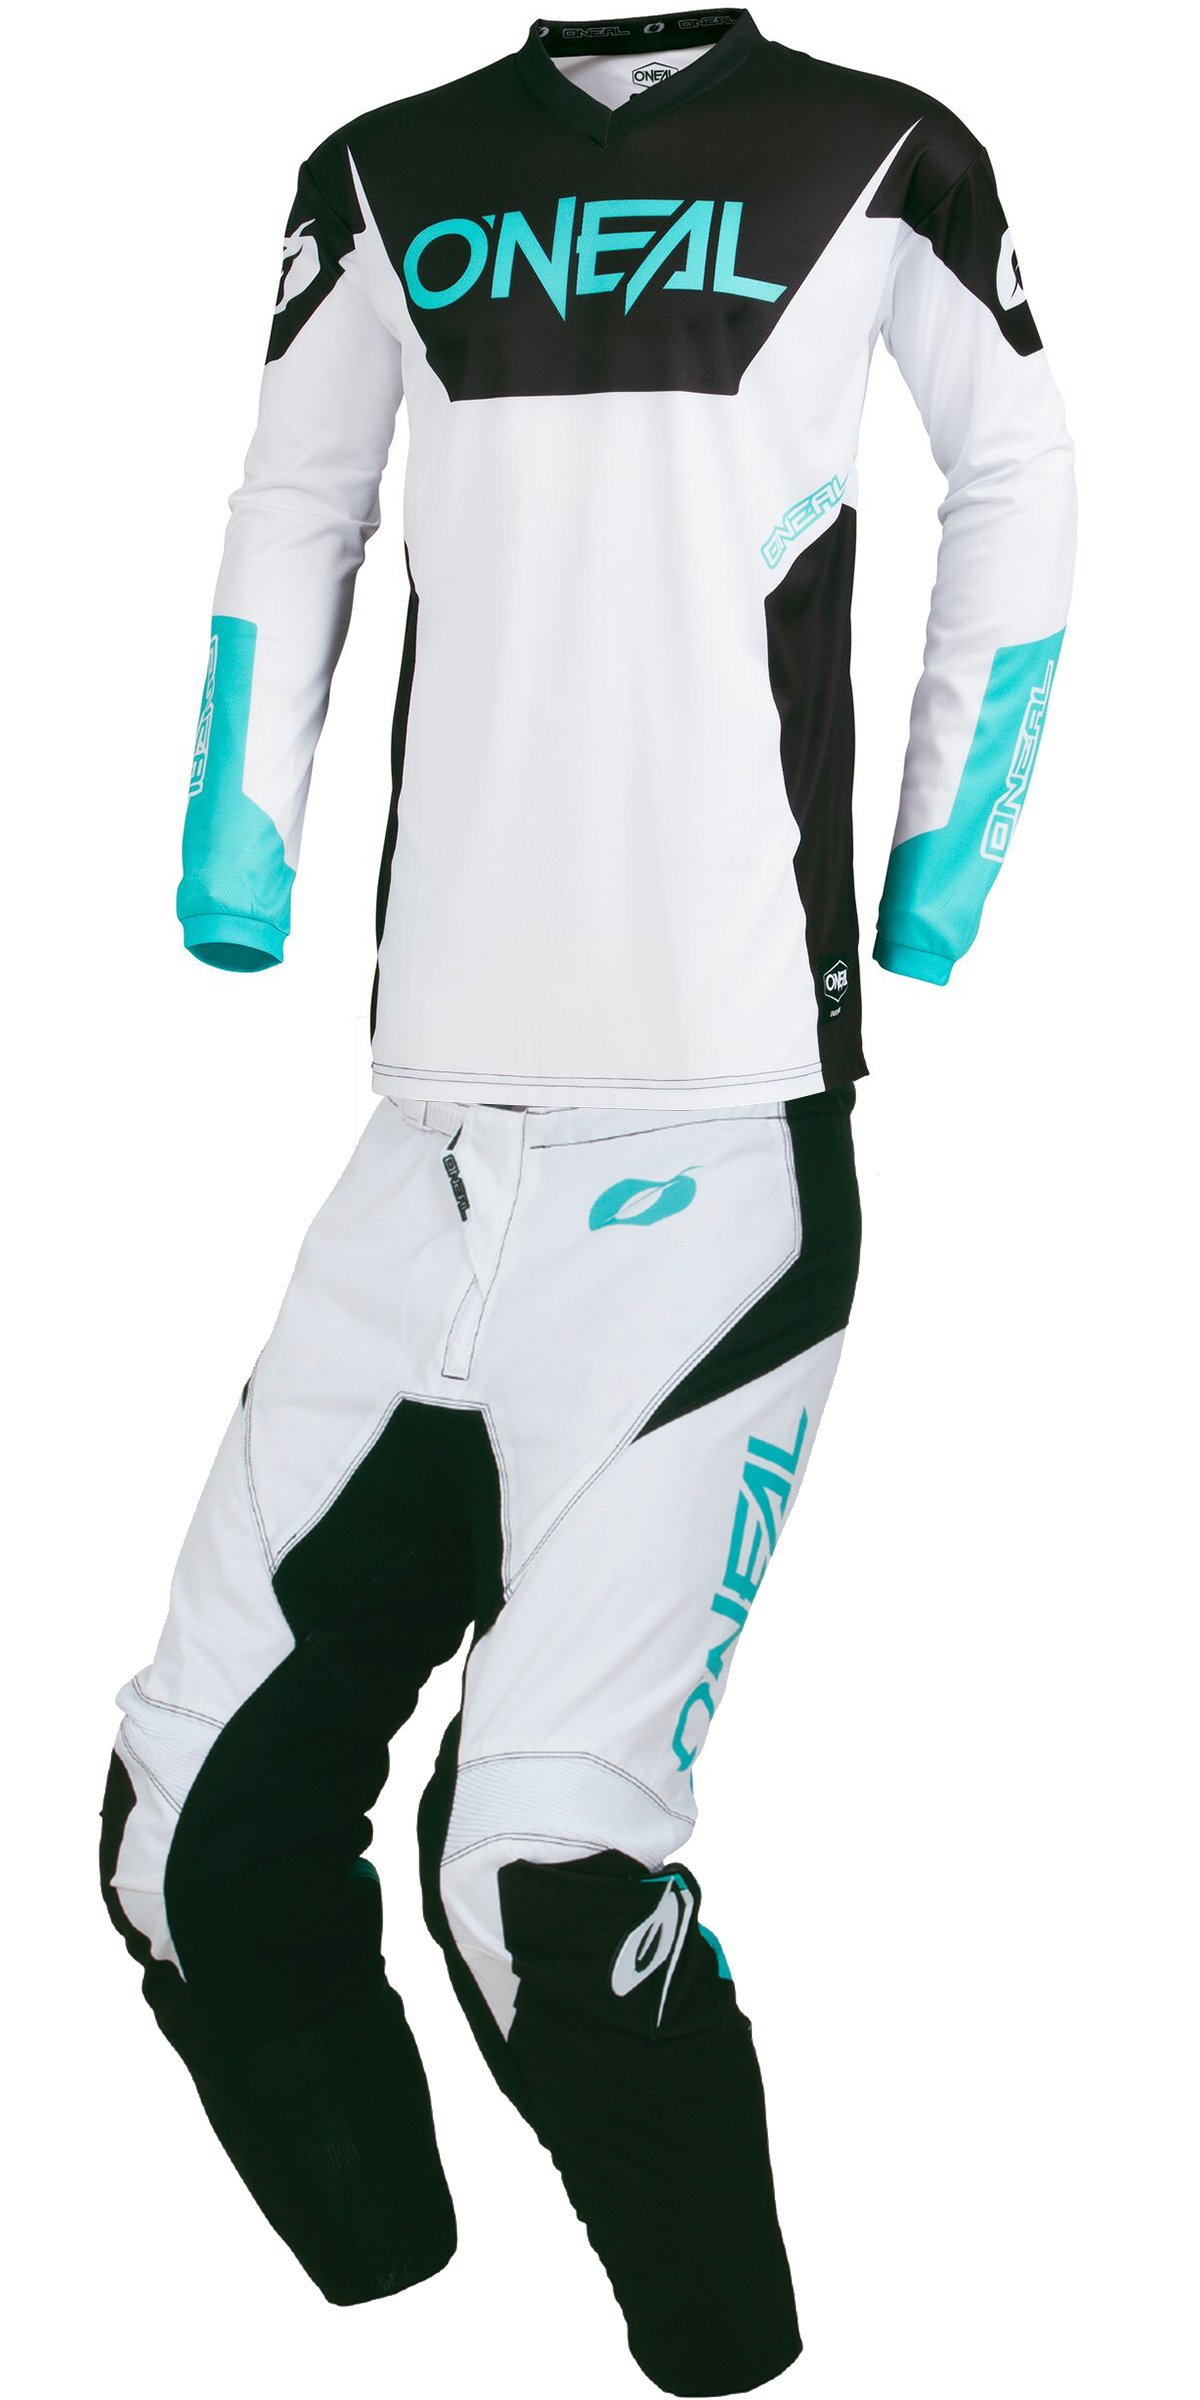 O'Neal - 2019 Element Racewear (Mens White & Teal Blue & Black X-Large/34W) MX Riding Gear Combo Set, Motocross Off-Road Dirt Bike Moisture Wicking Jersey & Light Weight Durable Stretch Panels Pant